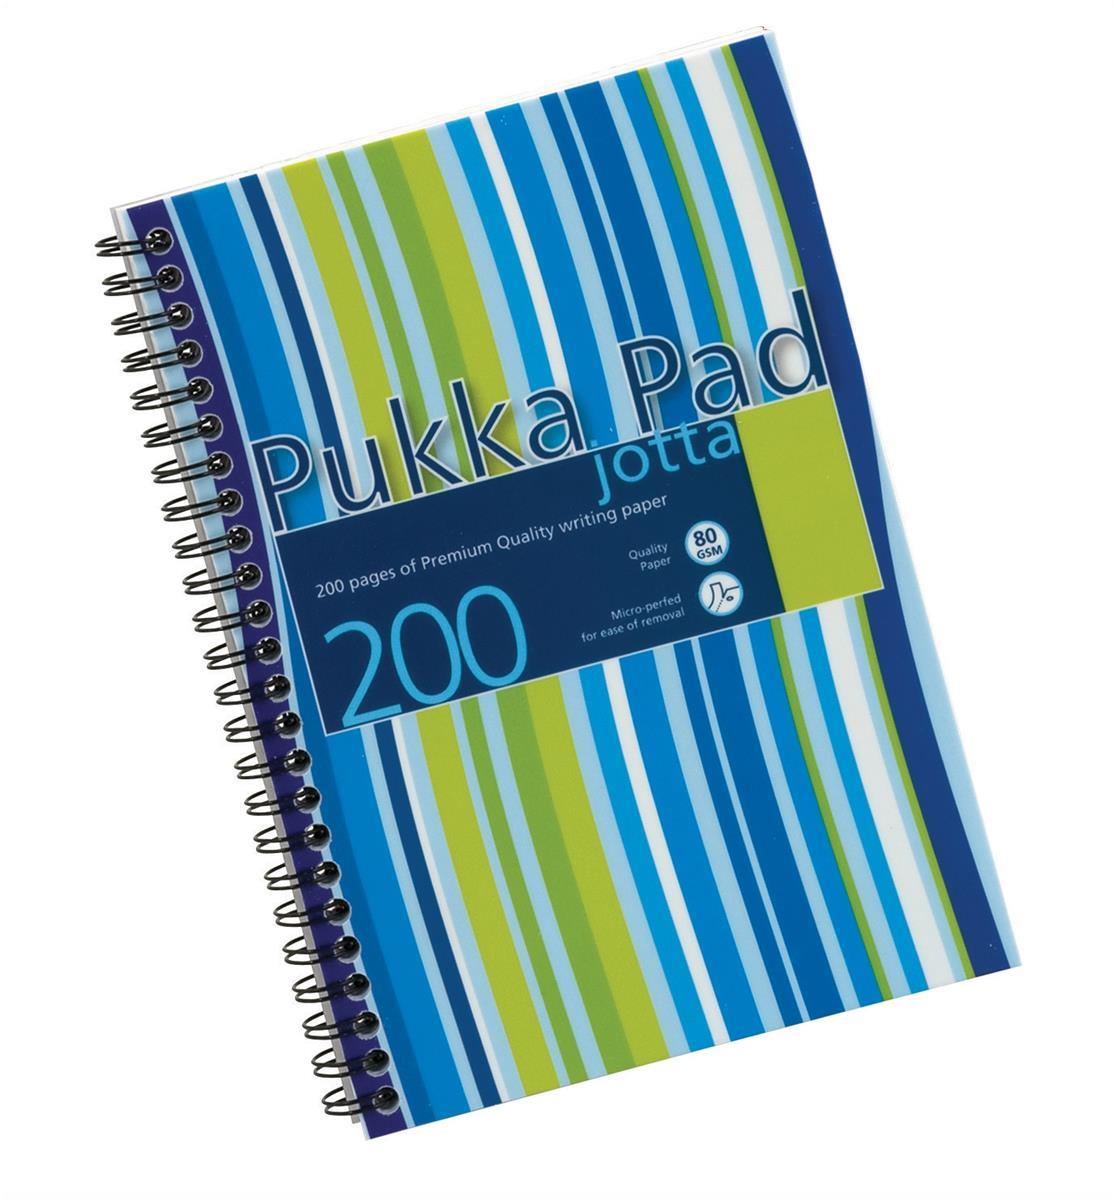 Pukka Pad Jotta Notebook Wirebound Perforated Ruled 80gsm 200pp A6 Metallic Ref JM036 [Pack 3]